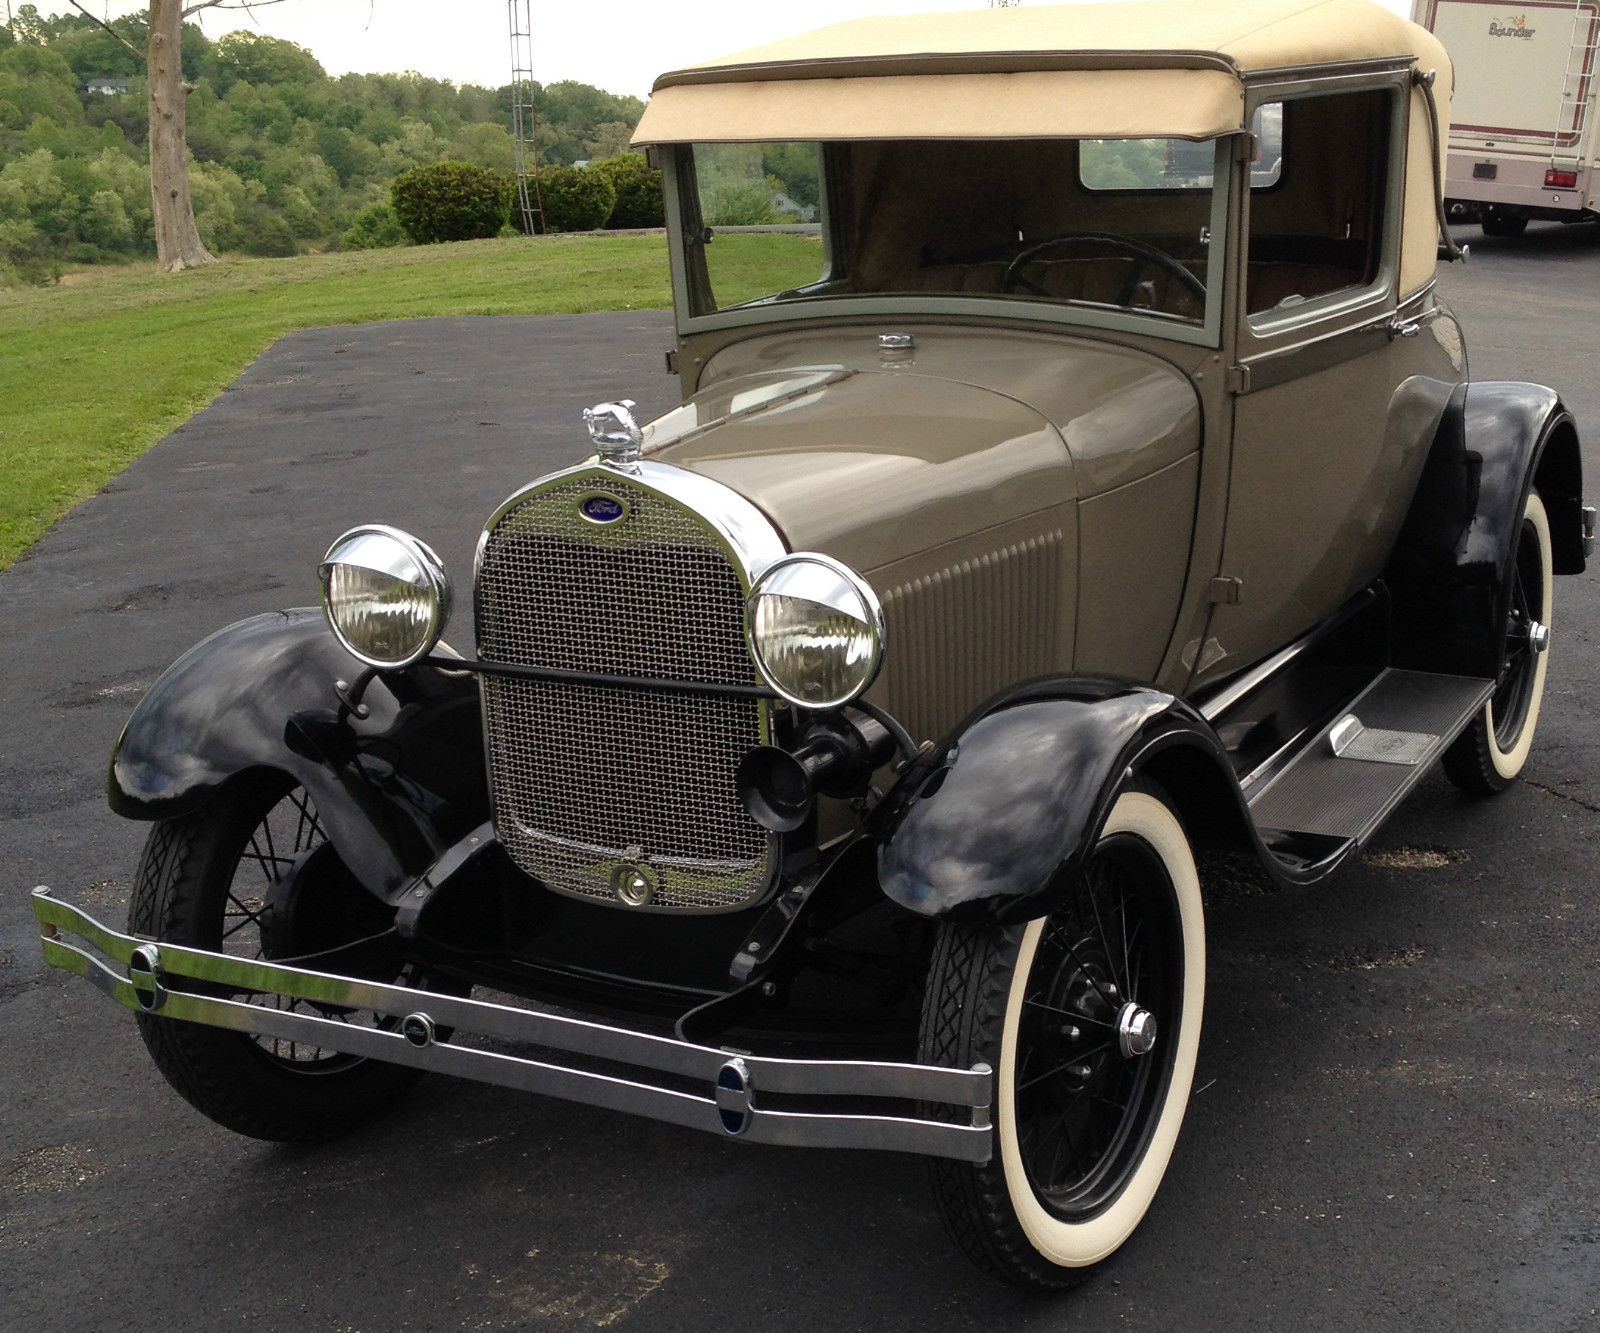 1928 ford model a sport coupe for sale in wellston ohio united states. Black Bedroom Furniture Sets. Home Design Ideas